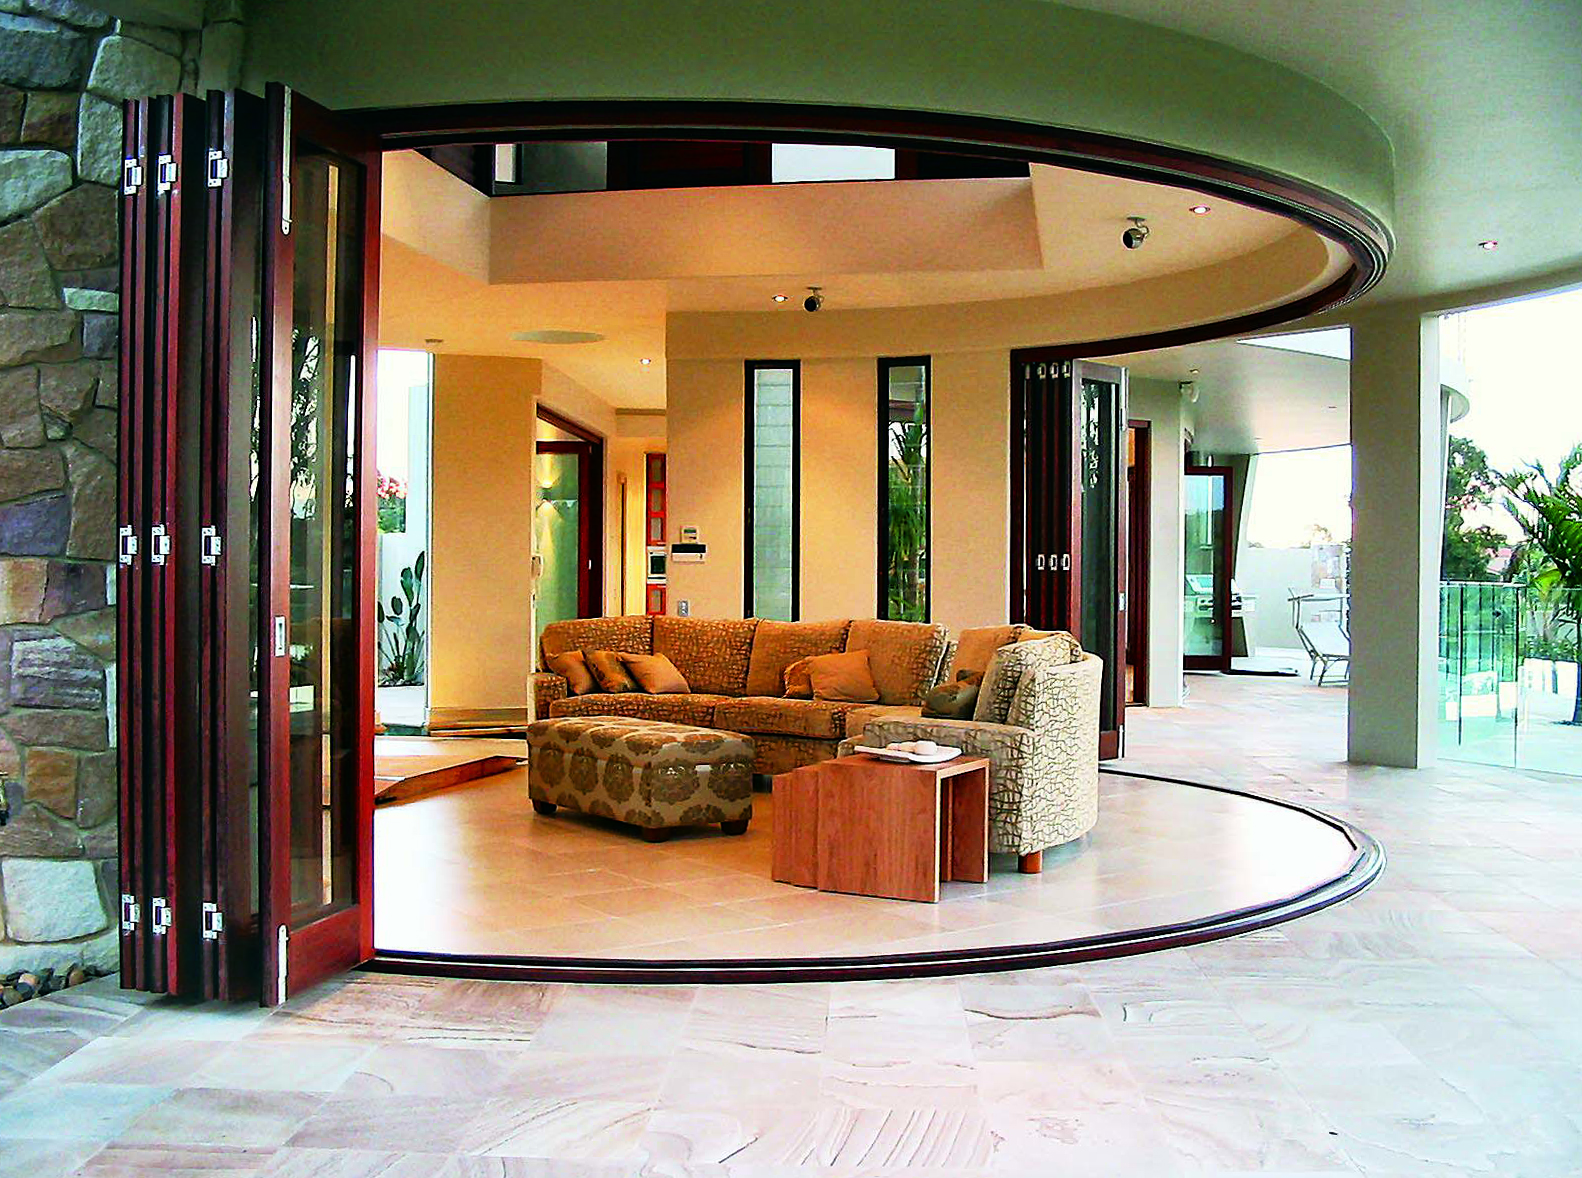 Foldable Door Design lovely bi fold doors interior door folding doors interior internal room dividers l door designs decorative Folding Patio Doors